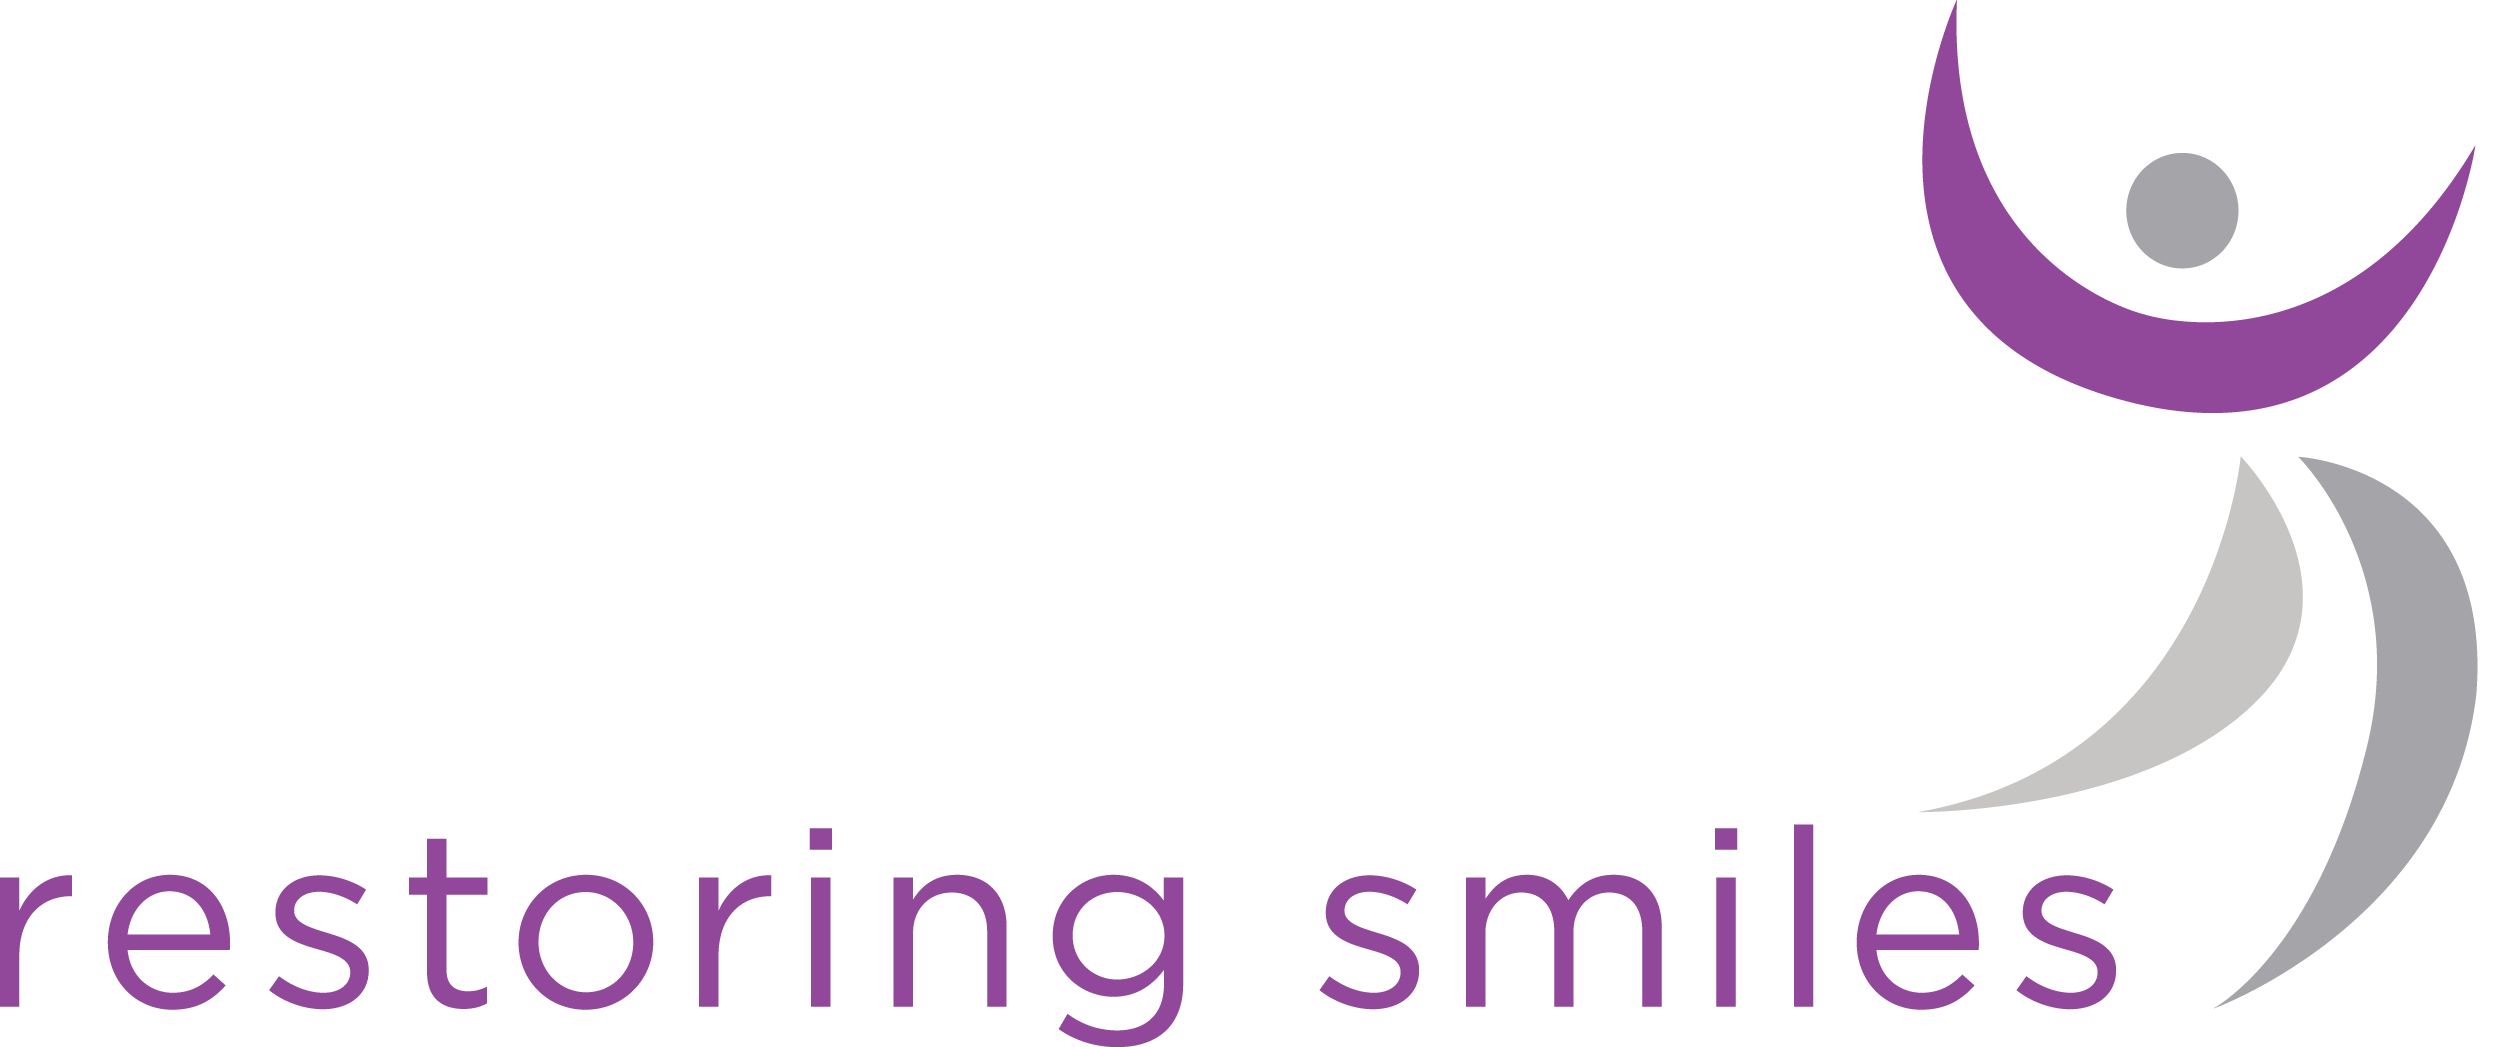 """""""The Foundation administers Project Restoring Smiles, a non-profit charitable program offering free dental and reconstructive services to women who have survived domestic violence, helping women regain their self-confidence through restoring their smiles and overall health.""""  http://www.drbmeisamifoundation.com/"""